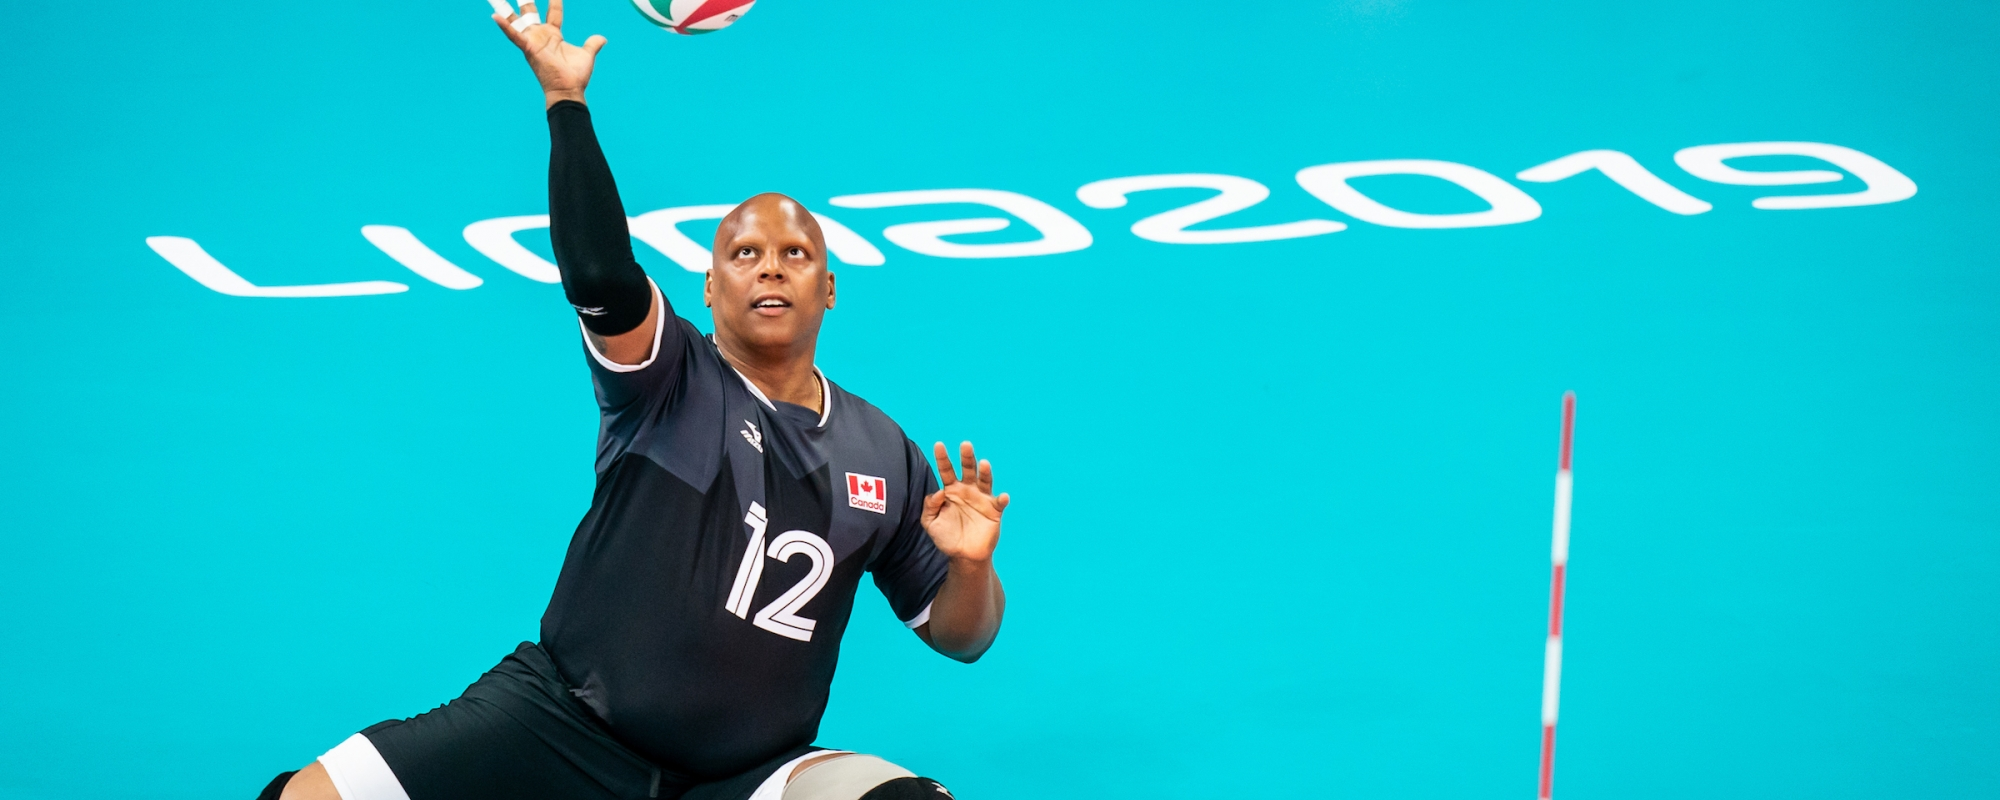 Jamoi Anderson serves in a game of sitting volleyball